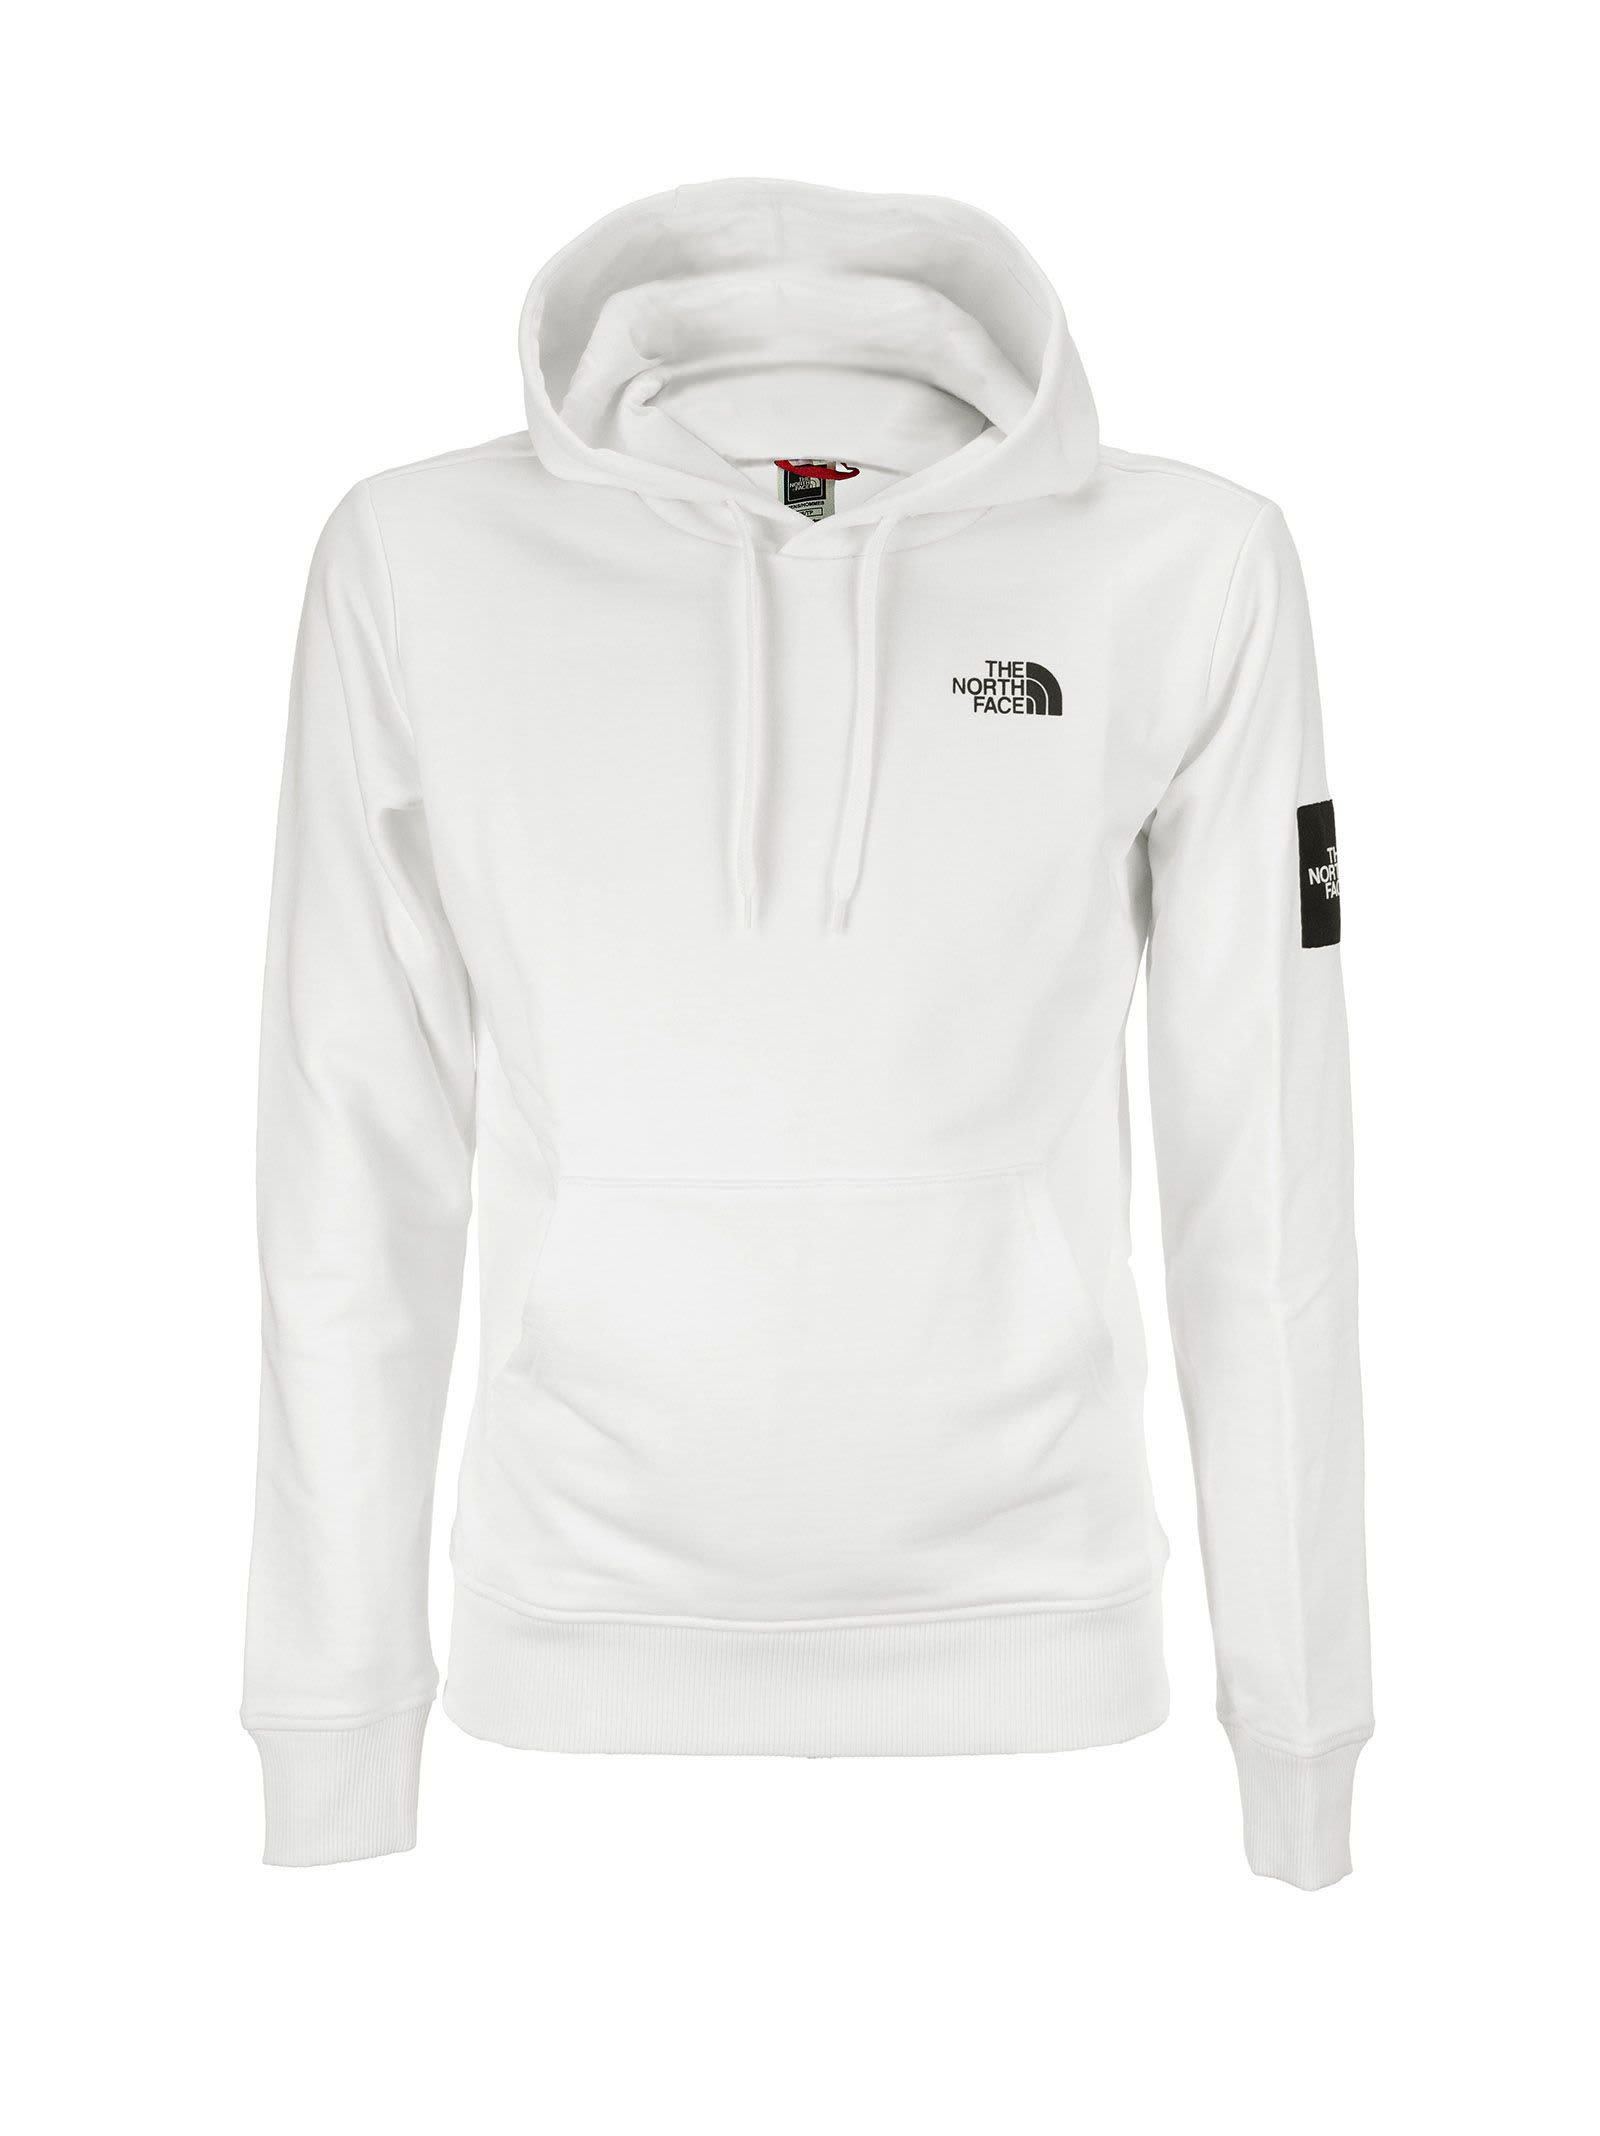 The North Face BLACK BOX MENS HOODED SWEATSHIRT